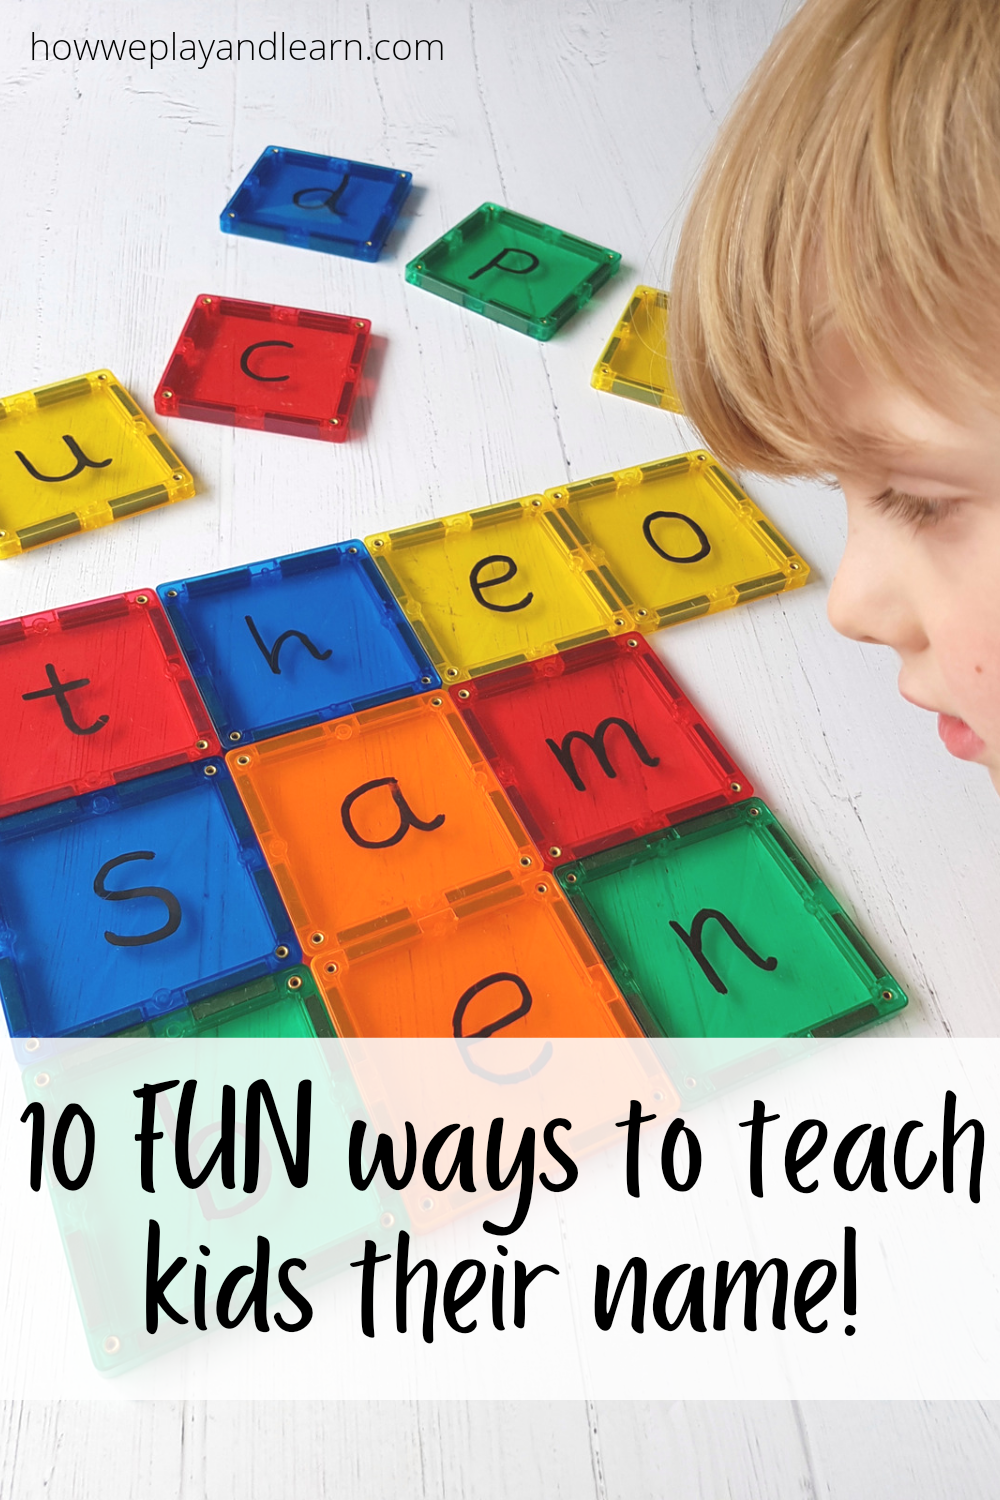 child learning names with magnetic tiles